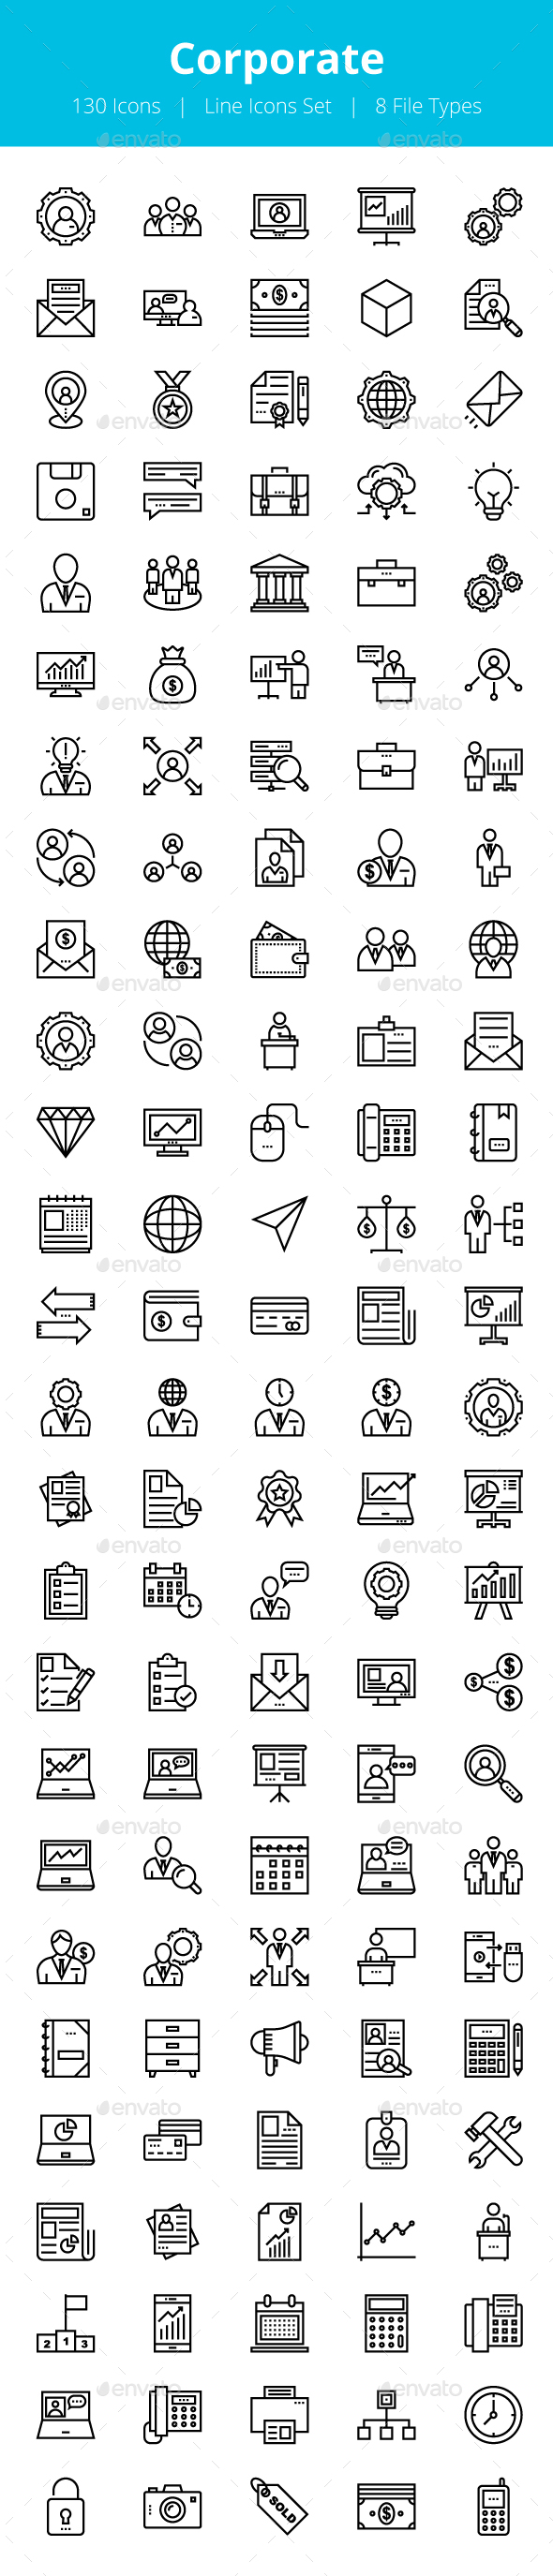 125+ Corporate Line Icons - Icons